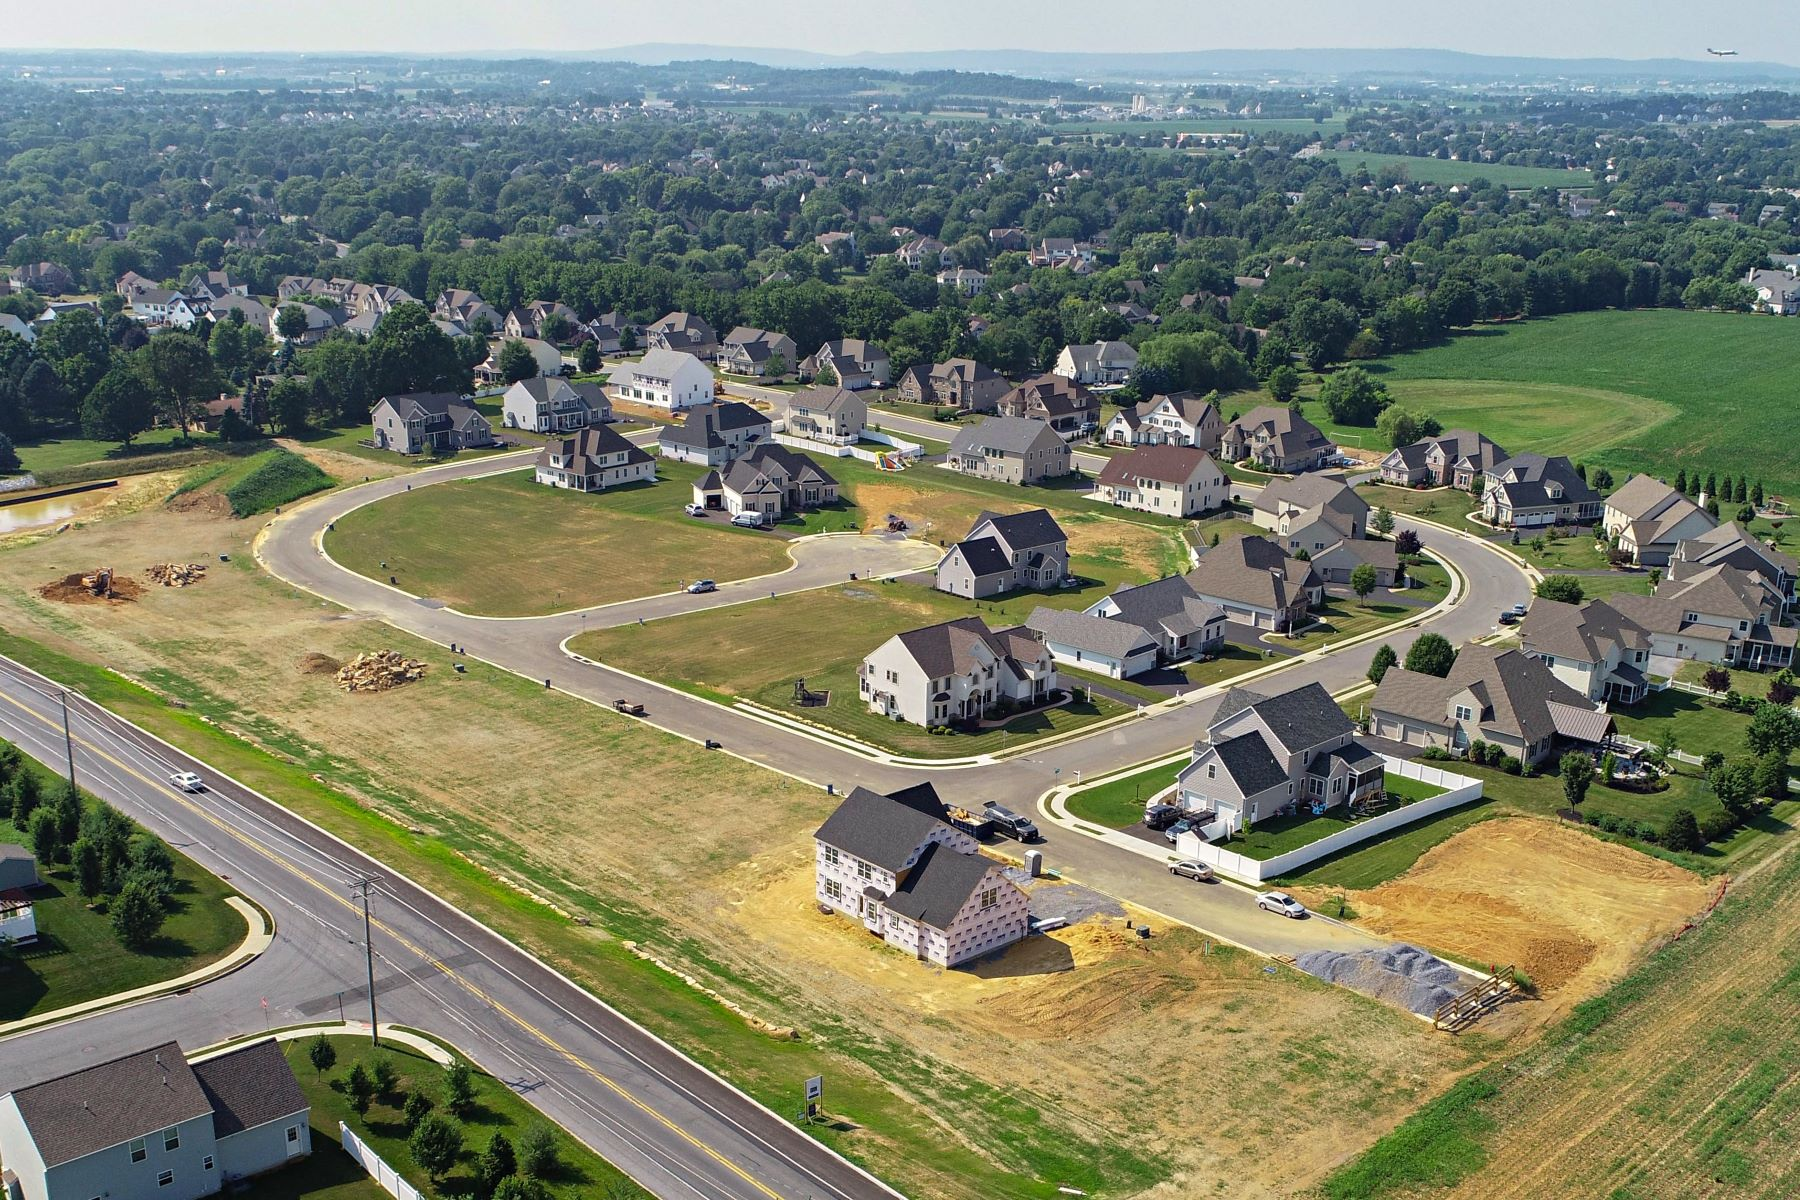 Land for Sale at Lot 23 Amber Drive Lot 23 Amber Drive Lititz, Pennsylvania 17543 United States